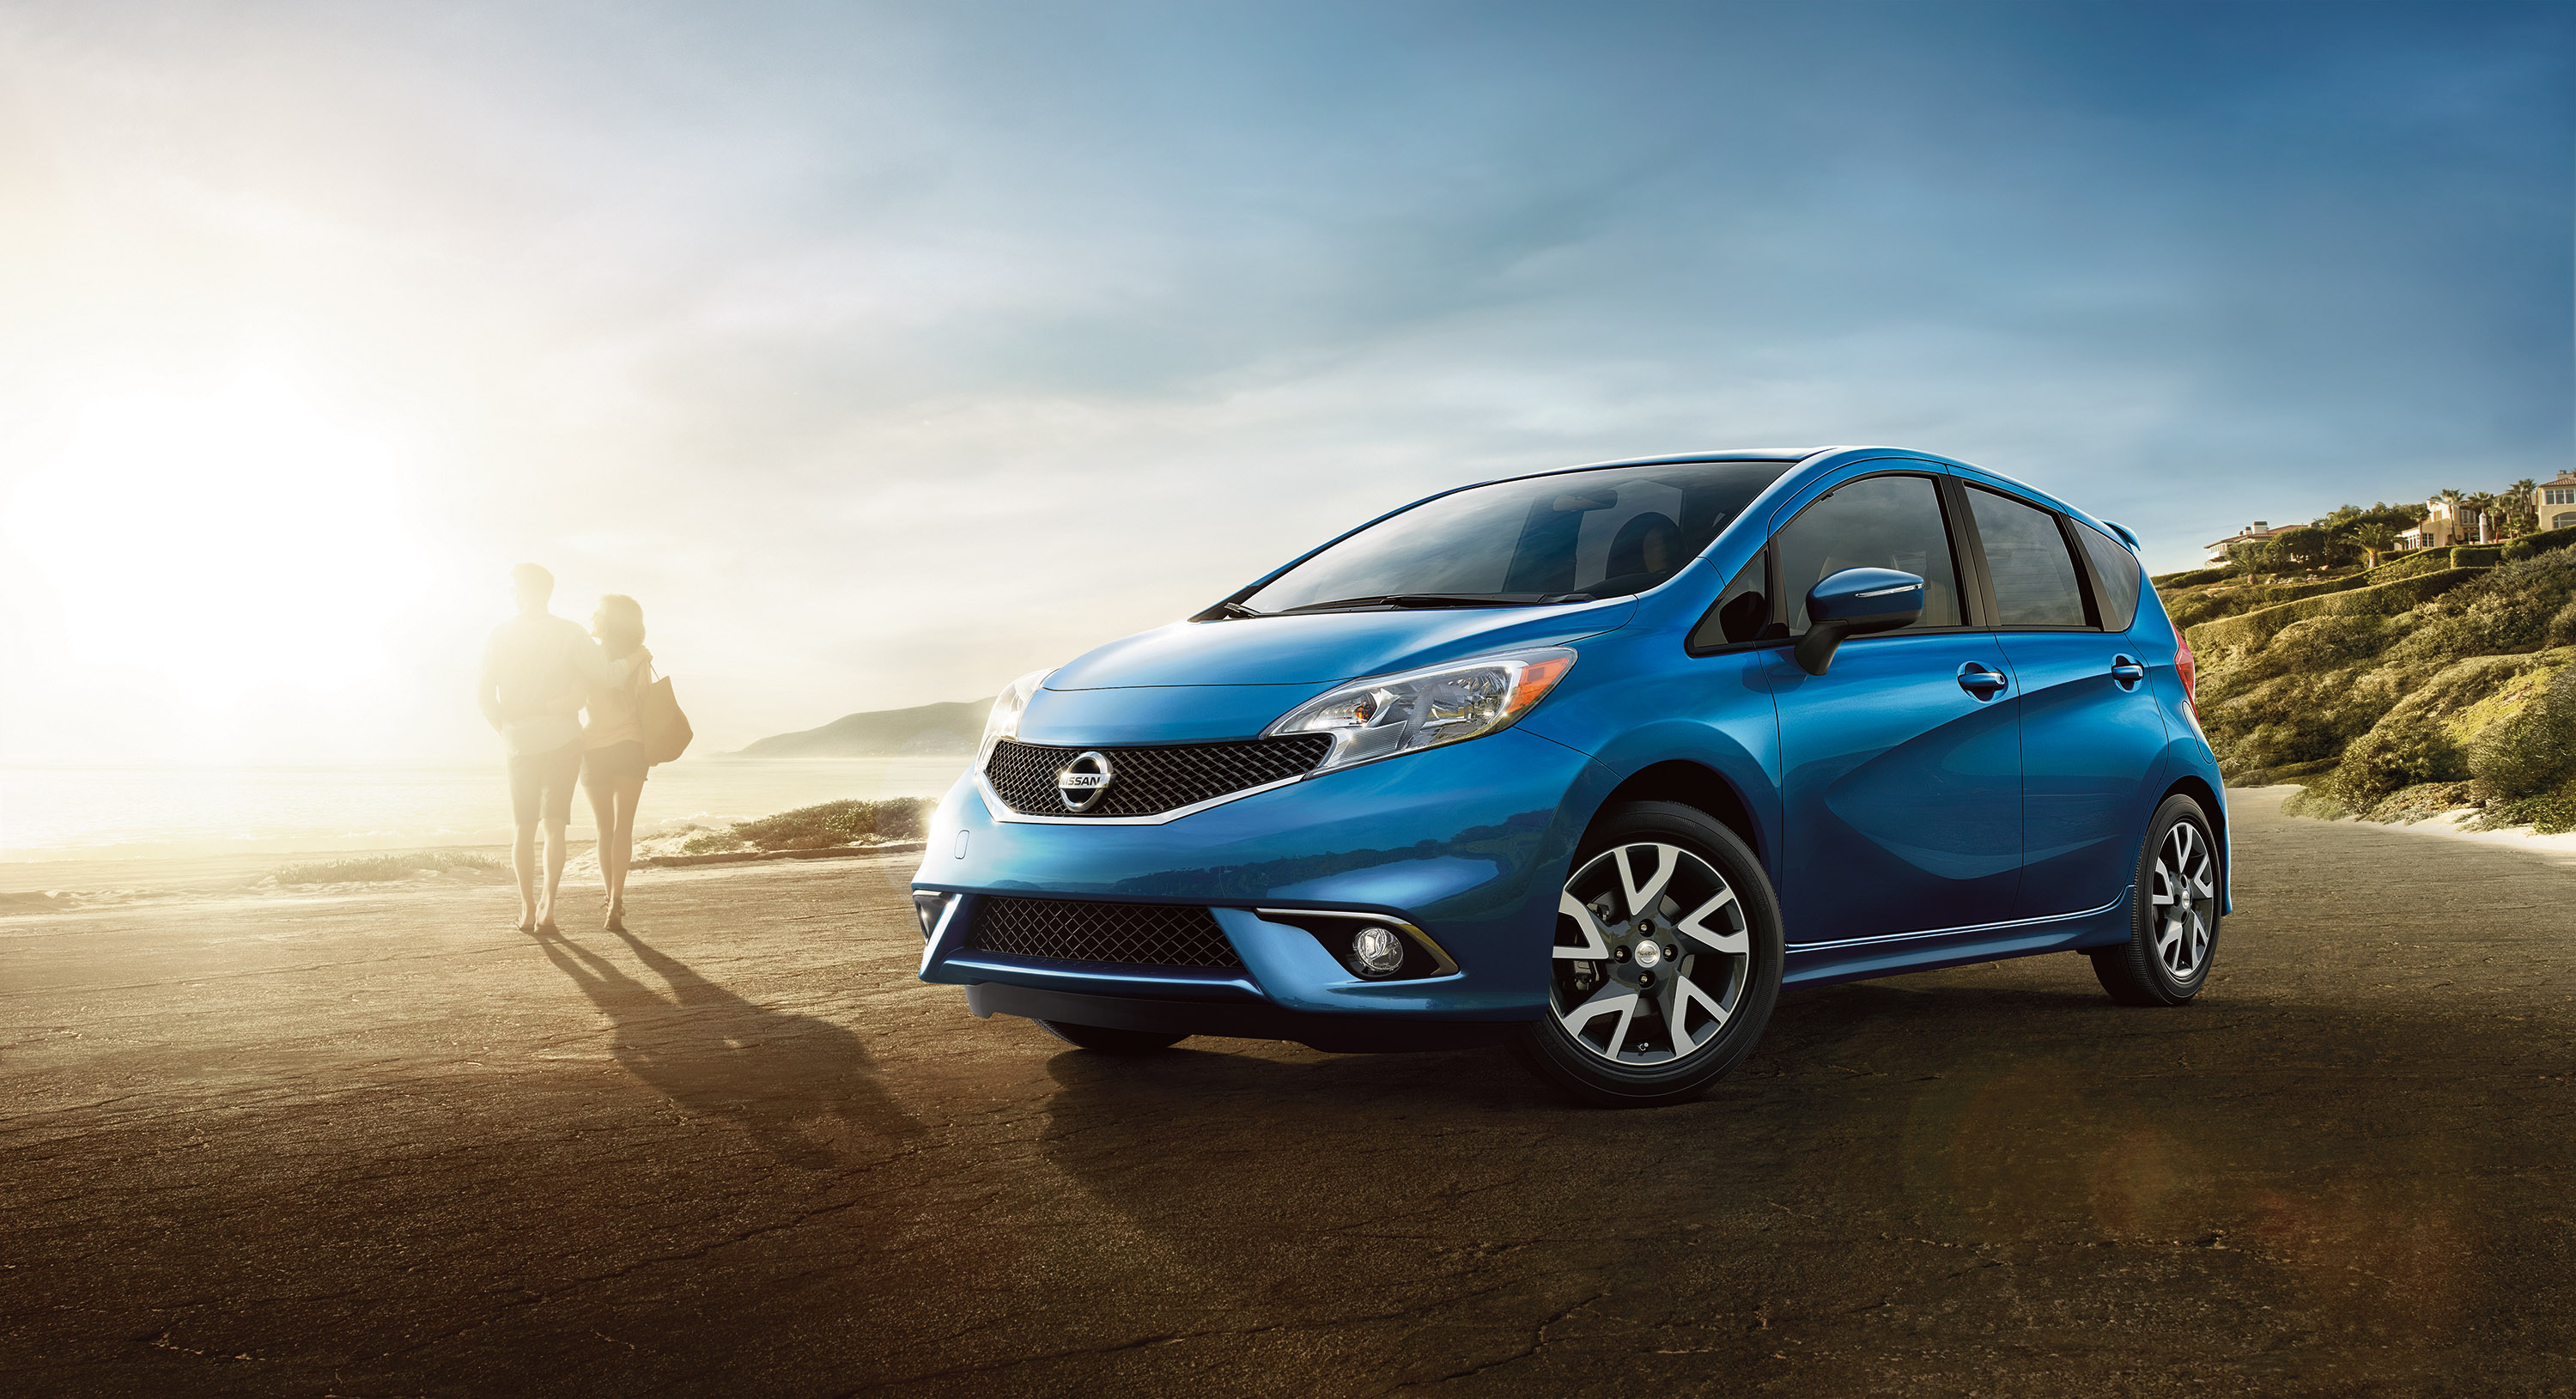 2016 Nissan Versa NoteThe 2016 Versa Note is offered in a range of five  well-